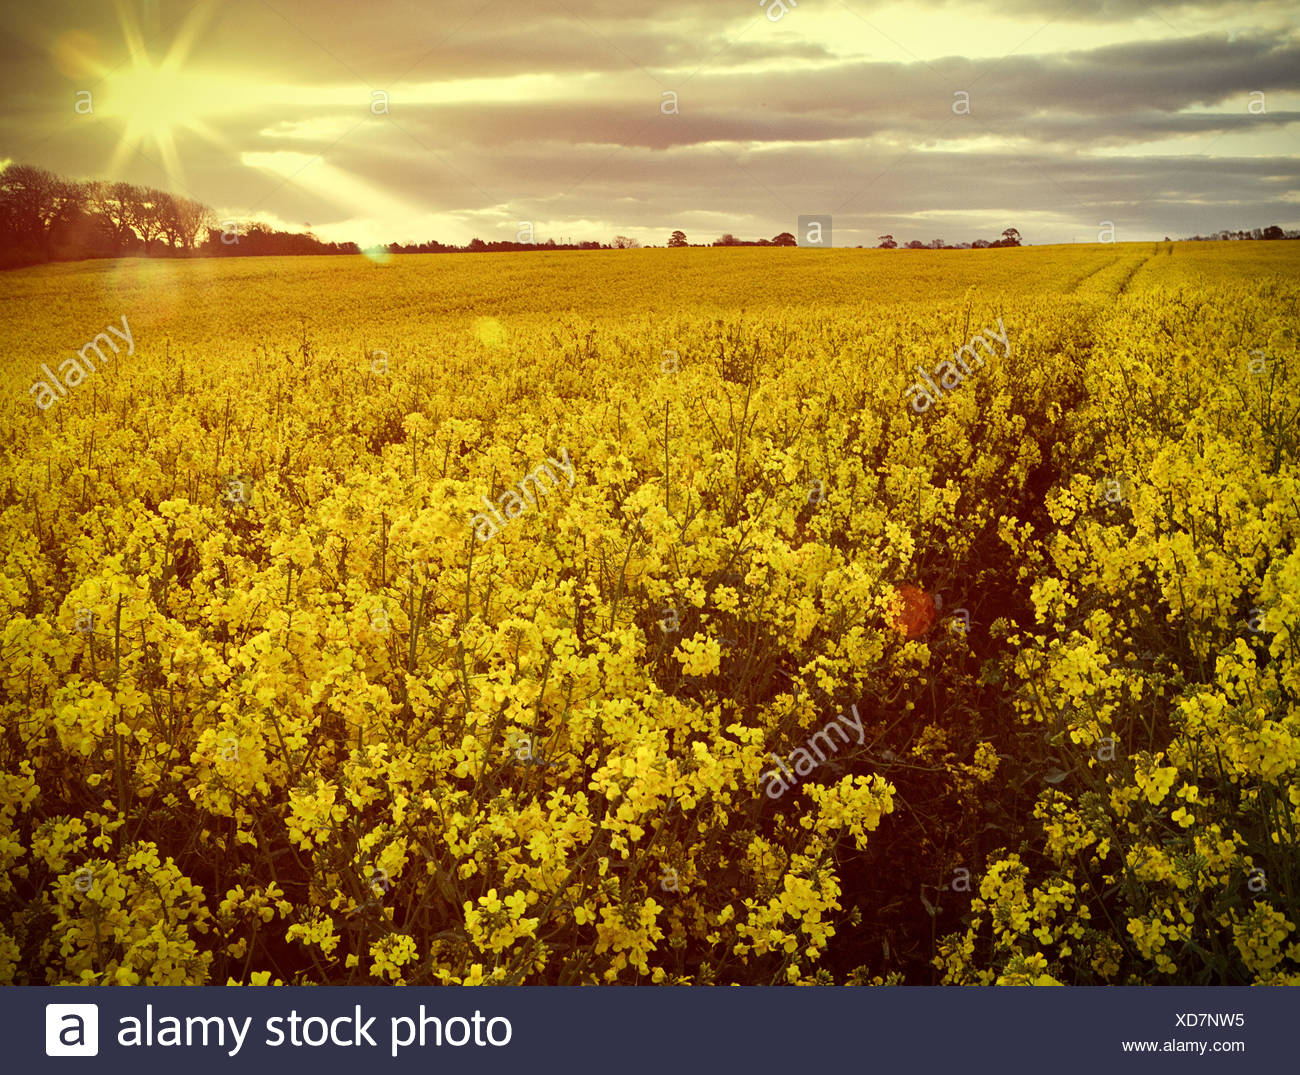 Yellow flowers in field - Stock Image